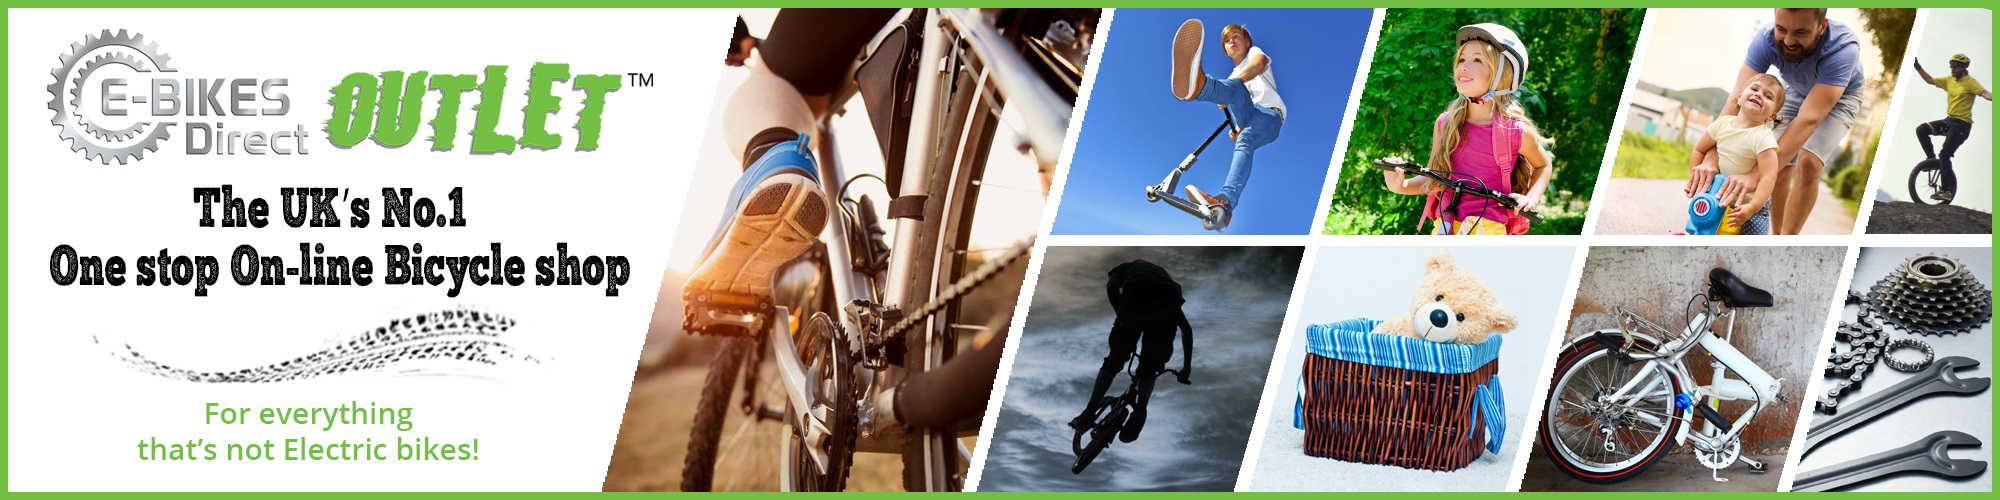 The UK's No.1 One stop On-Line Bicycle shop